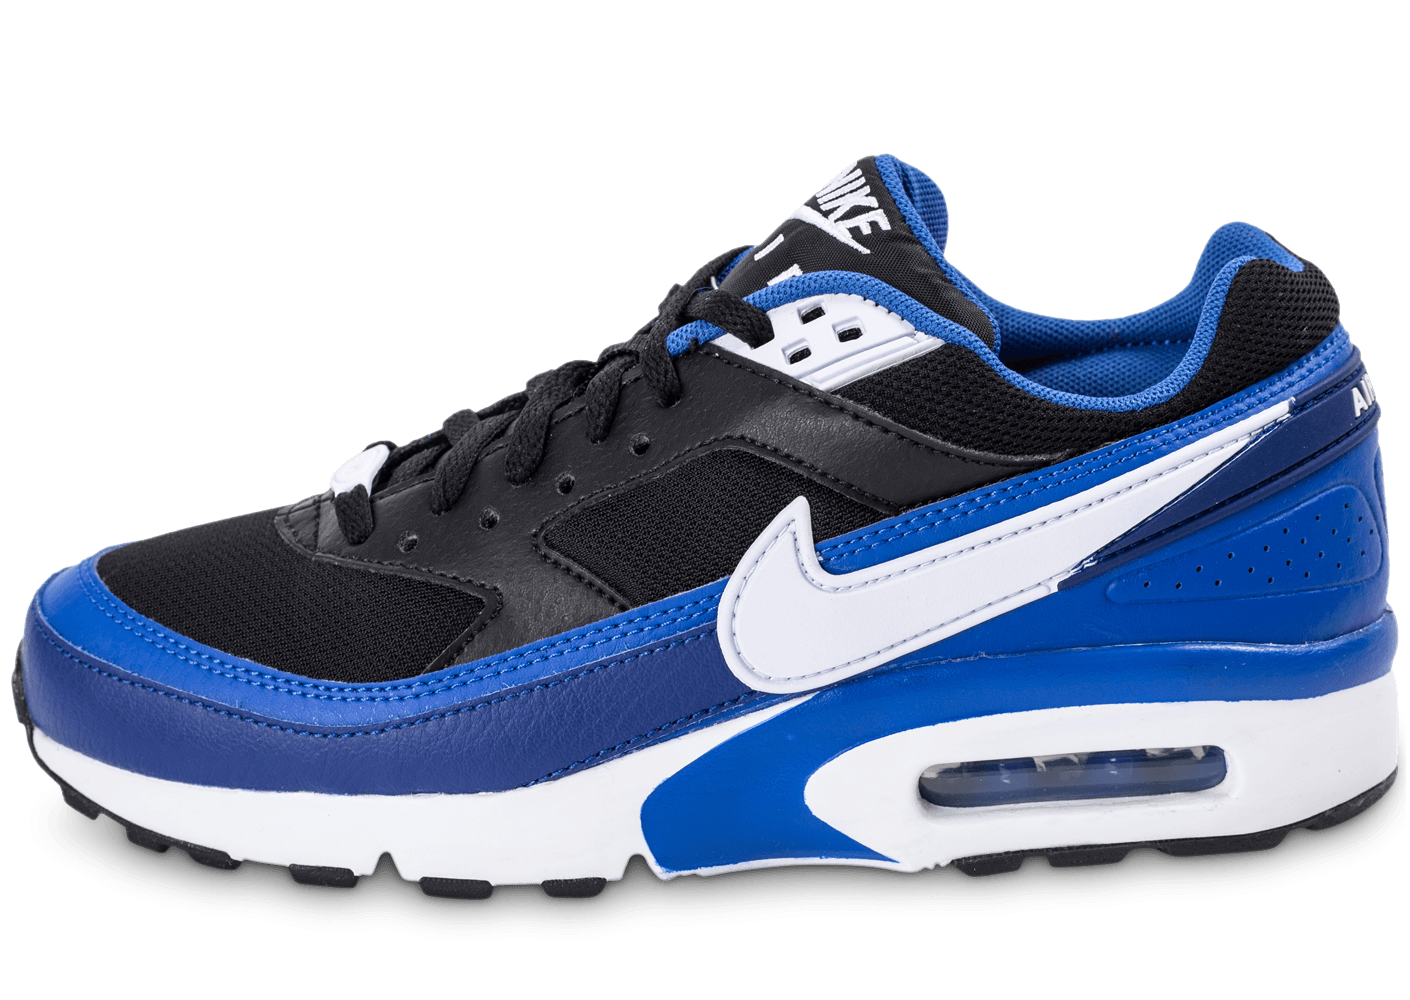 nike air max bw junior bleue chaussures chaussures. Black Bedroom Furniture Sets. Home Design Ideas